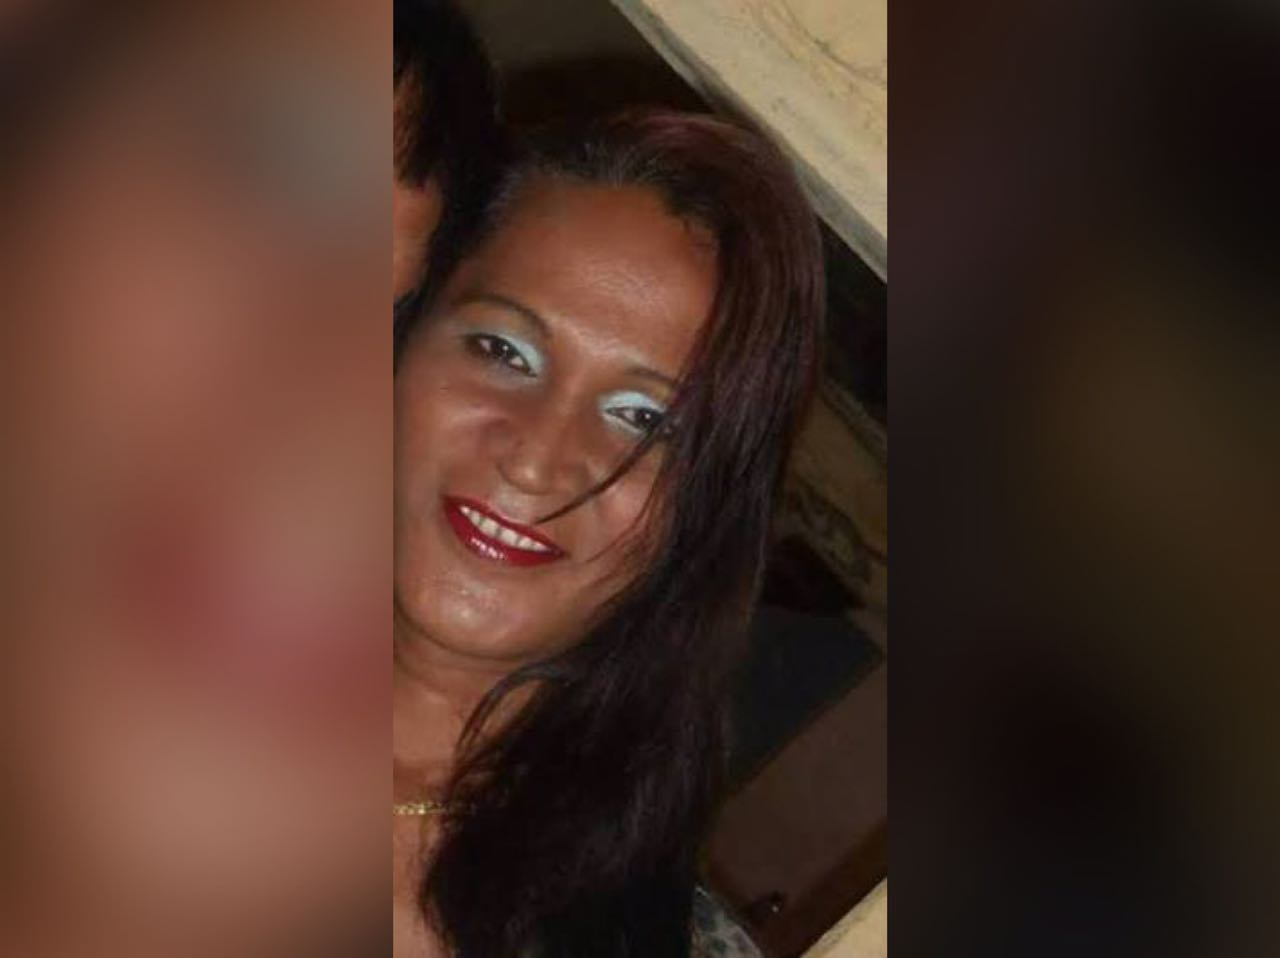 Travesti agredida e esfaqueada no Ceará segue internada em hospital